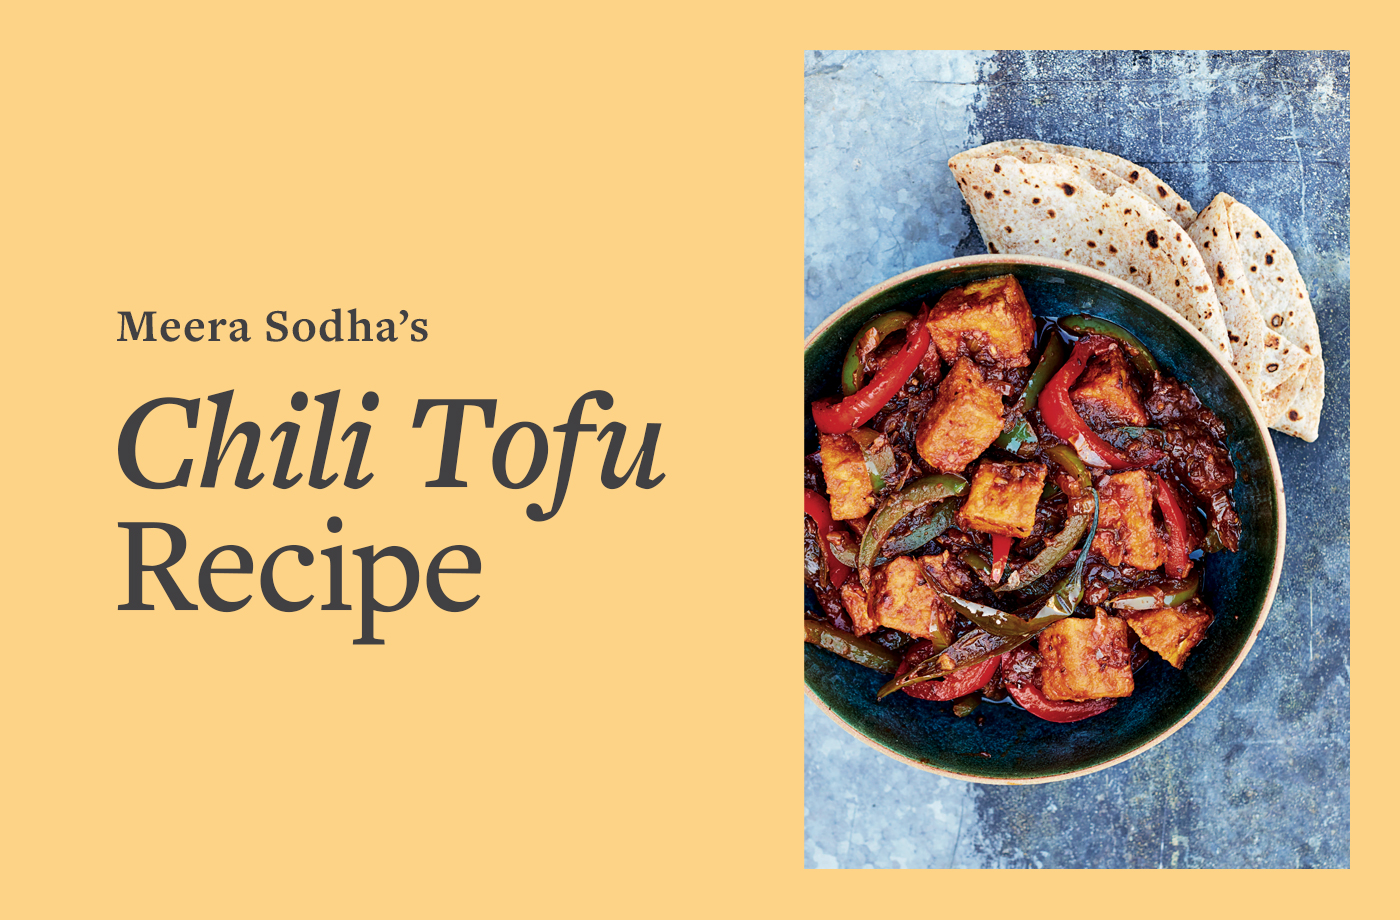 Thumbnail for Meera Sodha Shares the Vegan Chili Tofu Recipe That Transports Her Back to Her Childhood in a Single Bite